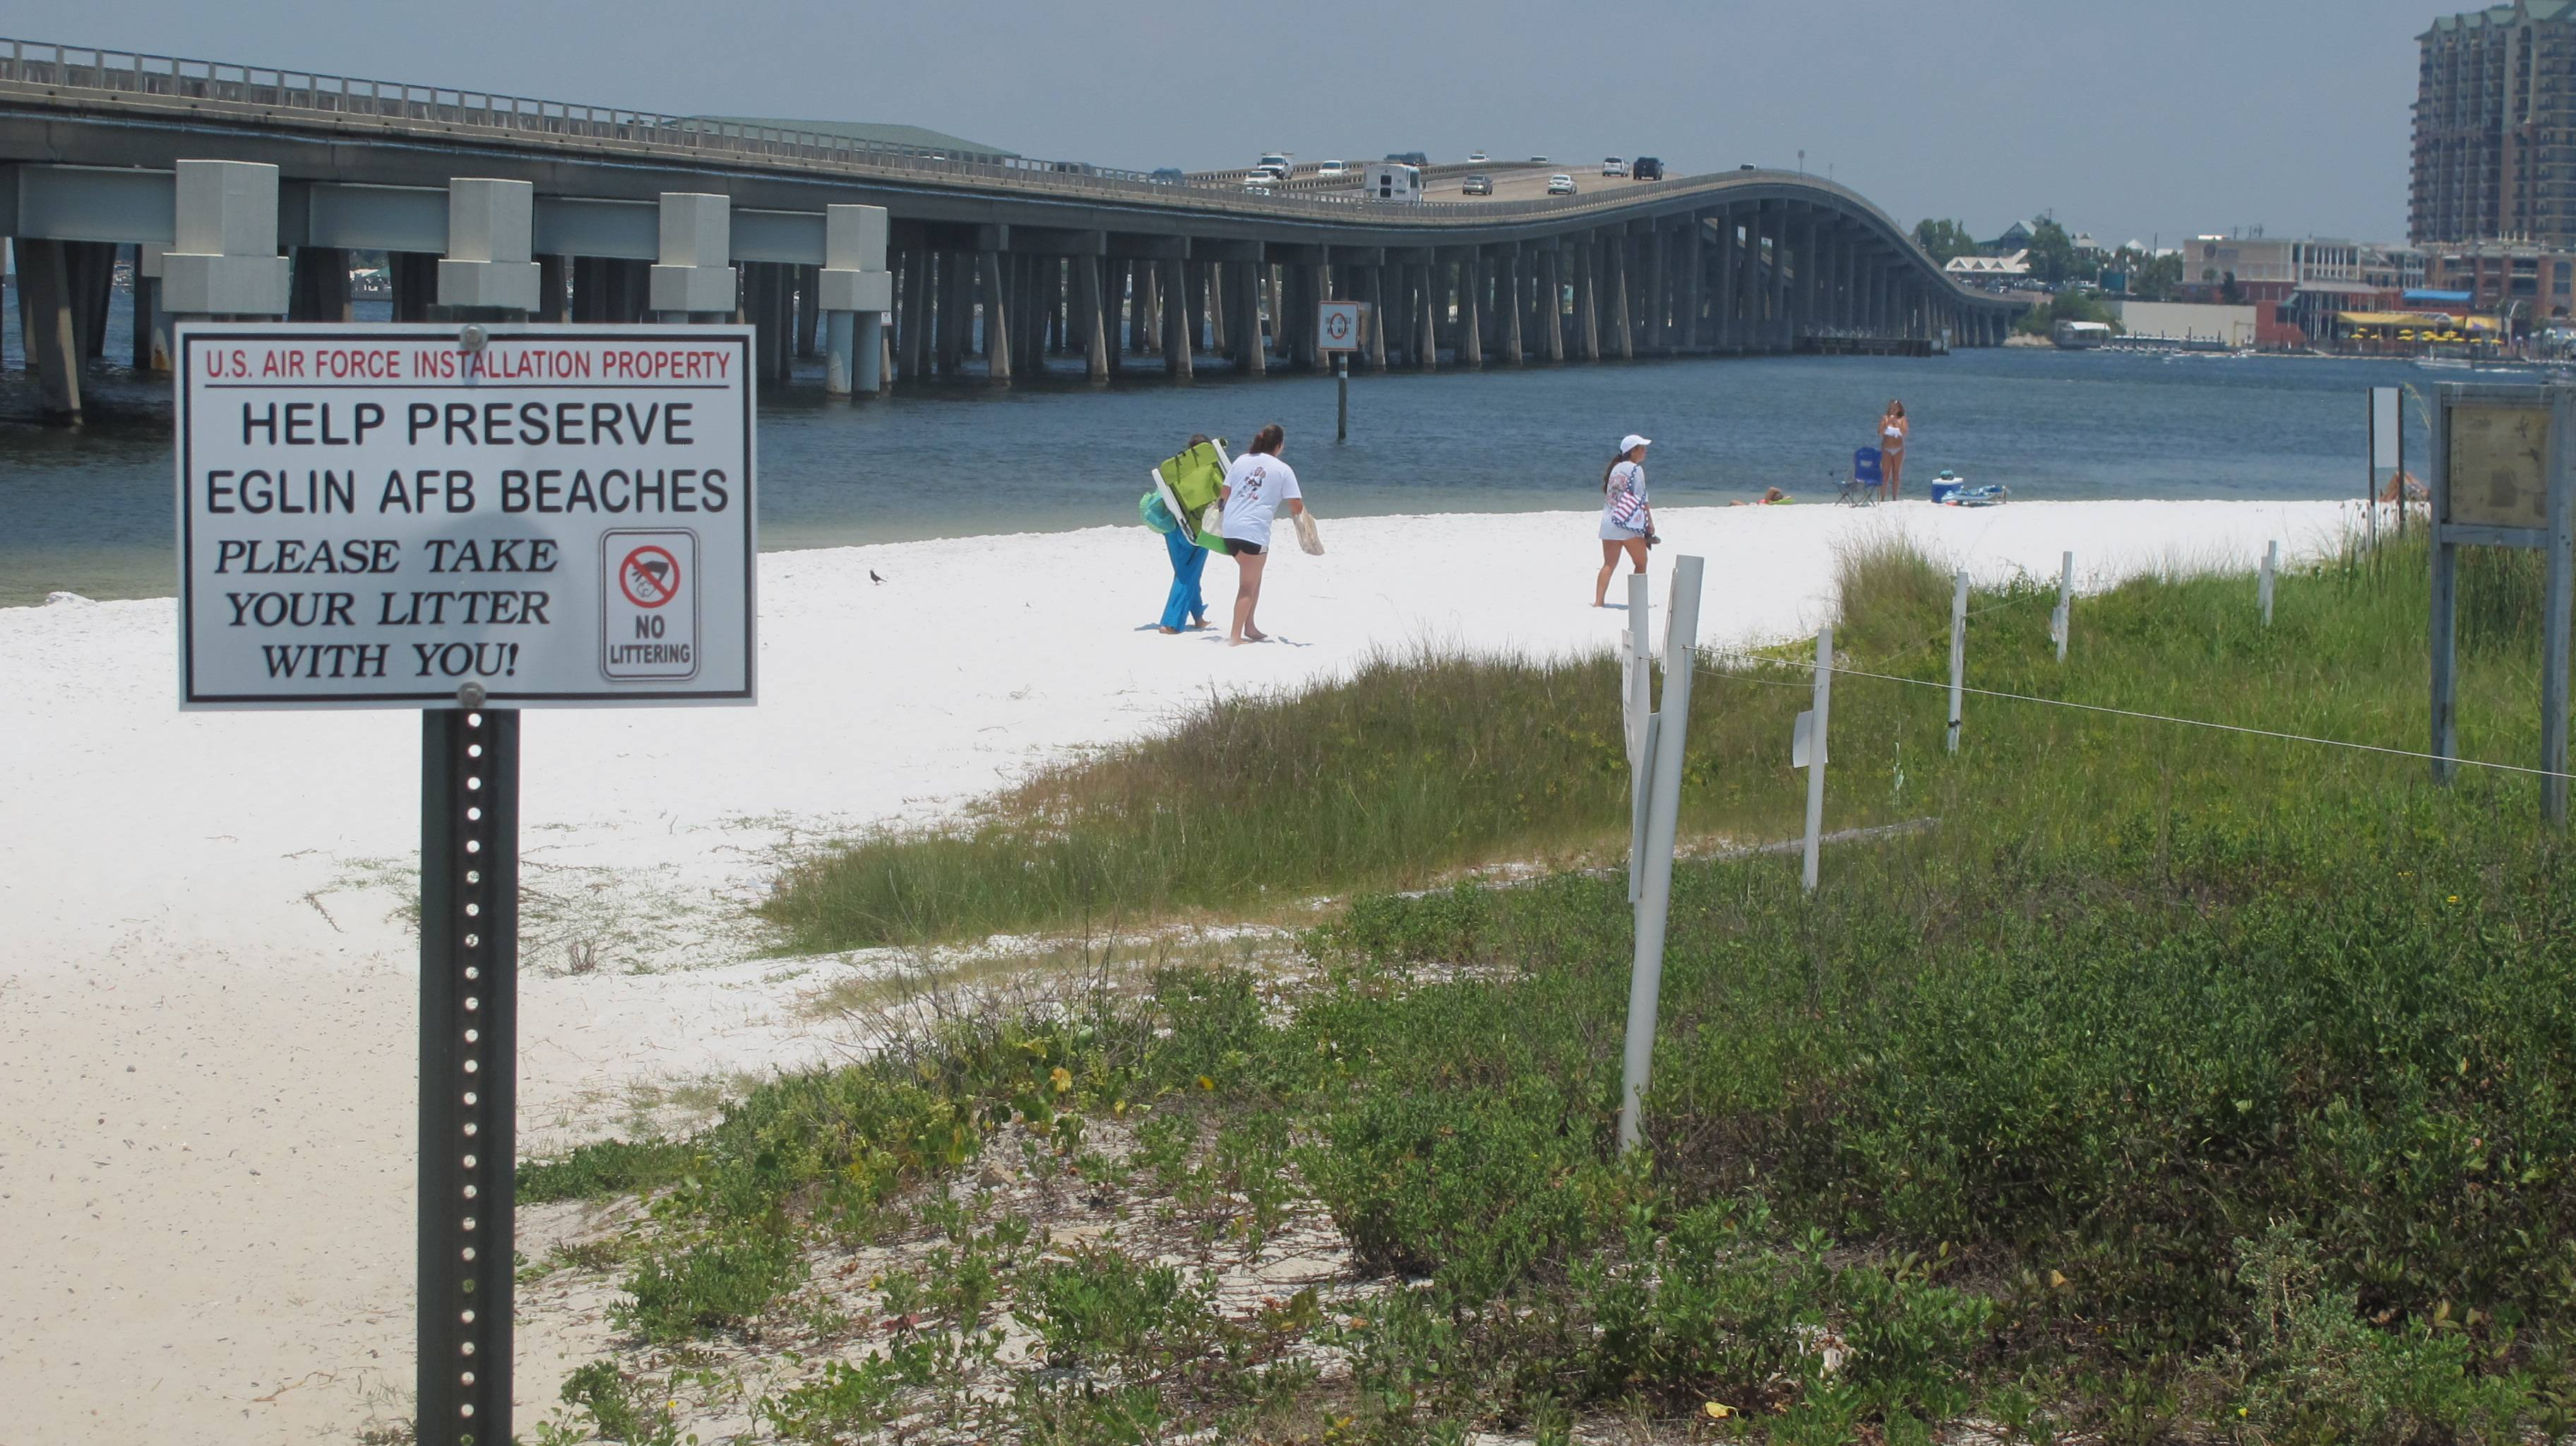 People look for a place to set up on a shallow beach under a highway bridge in Destin, Fla. Eglin Air Force Base controls the beach, but a small section of the beach is open to the public.